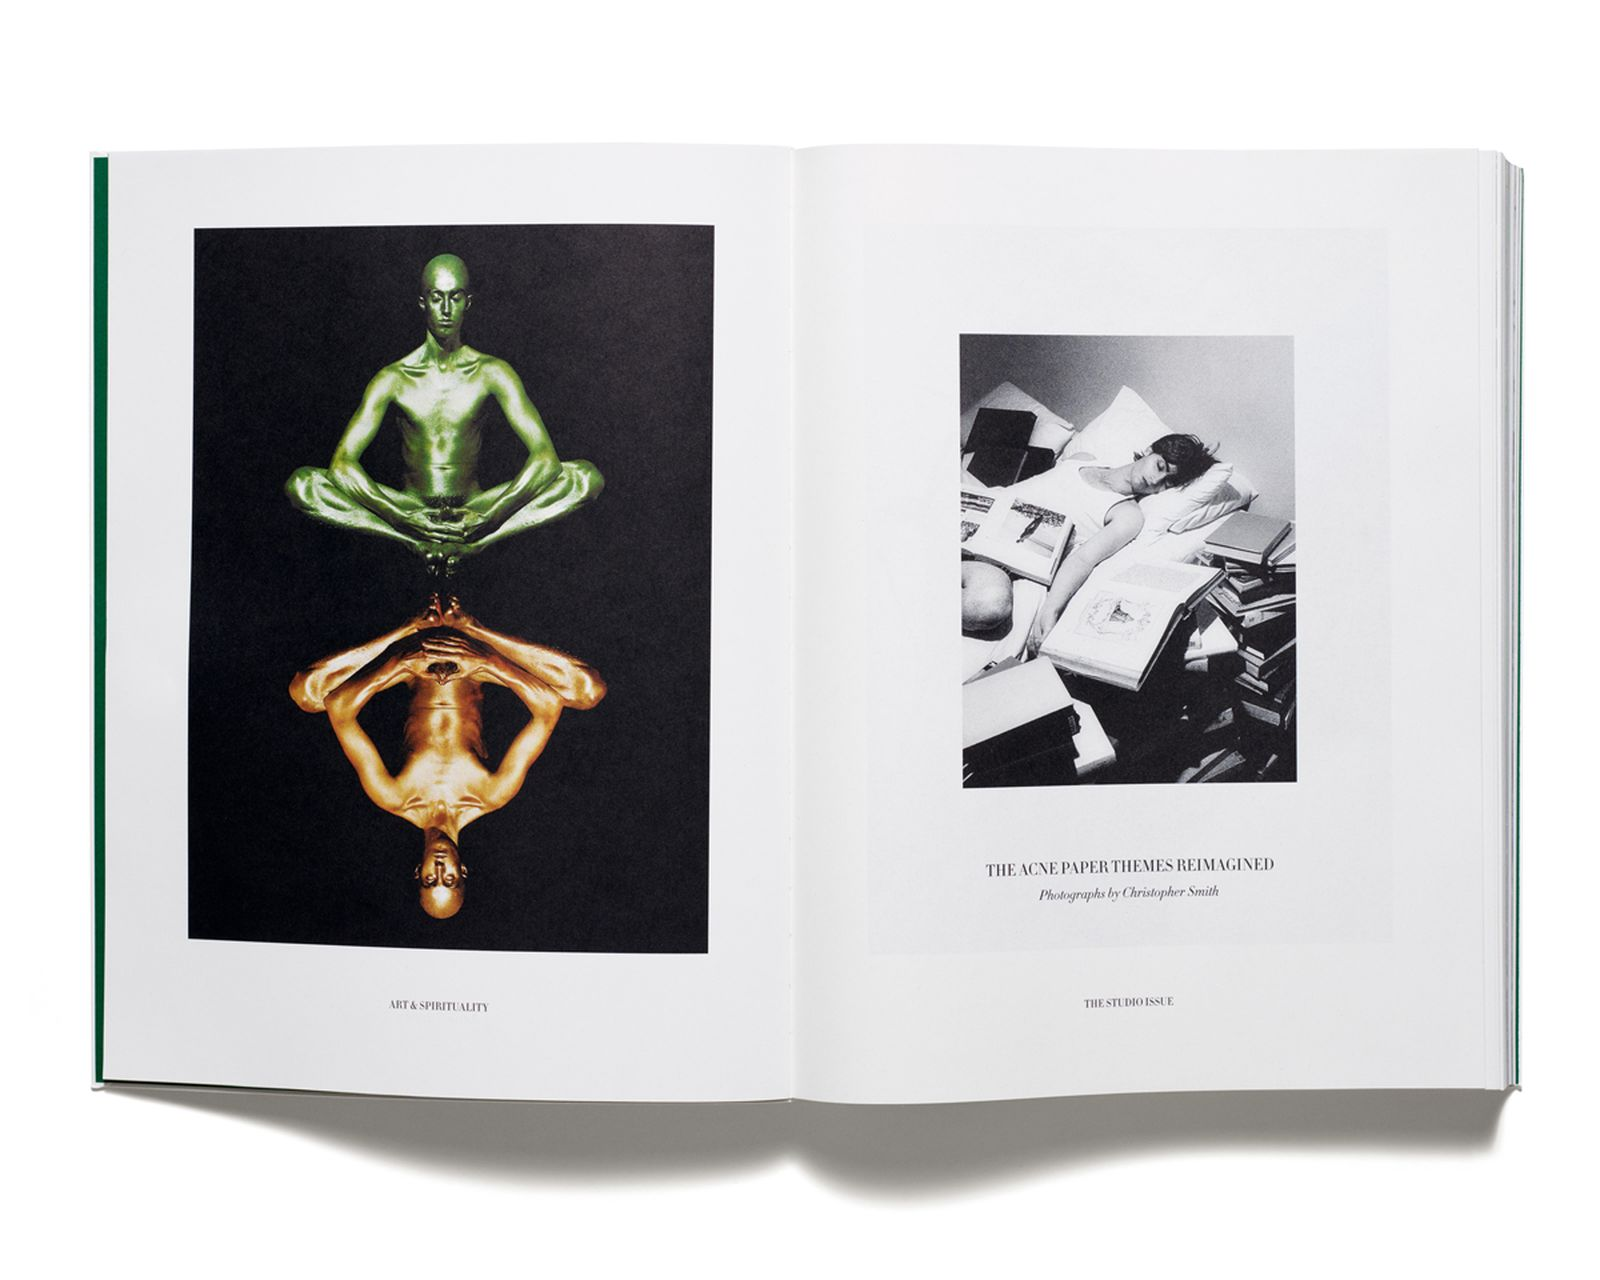 """THE ACNE PAPER THEMES REIMAGINED - """"Art & Spirituality"""" and """"The Studio"""" Photographs by Christopher Smith"""